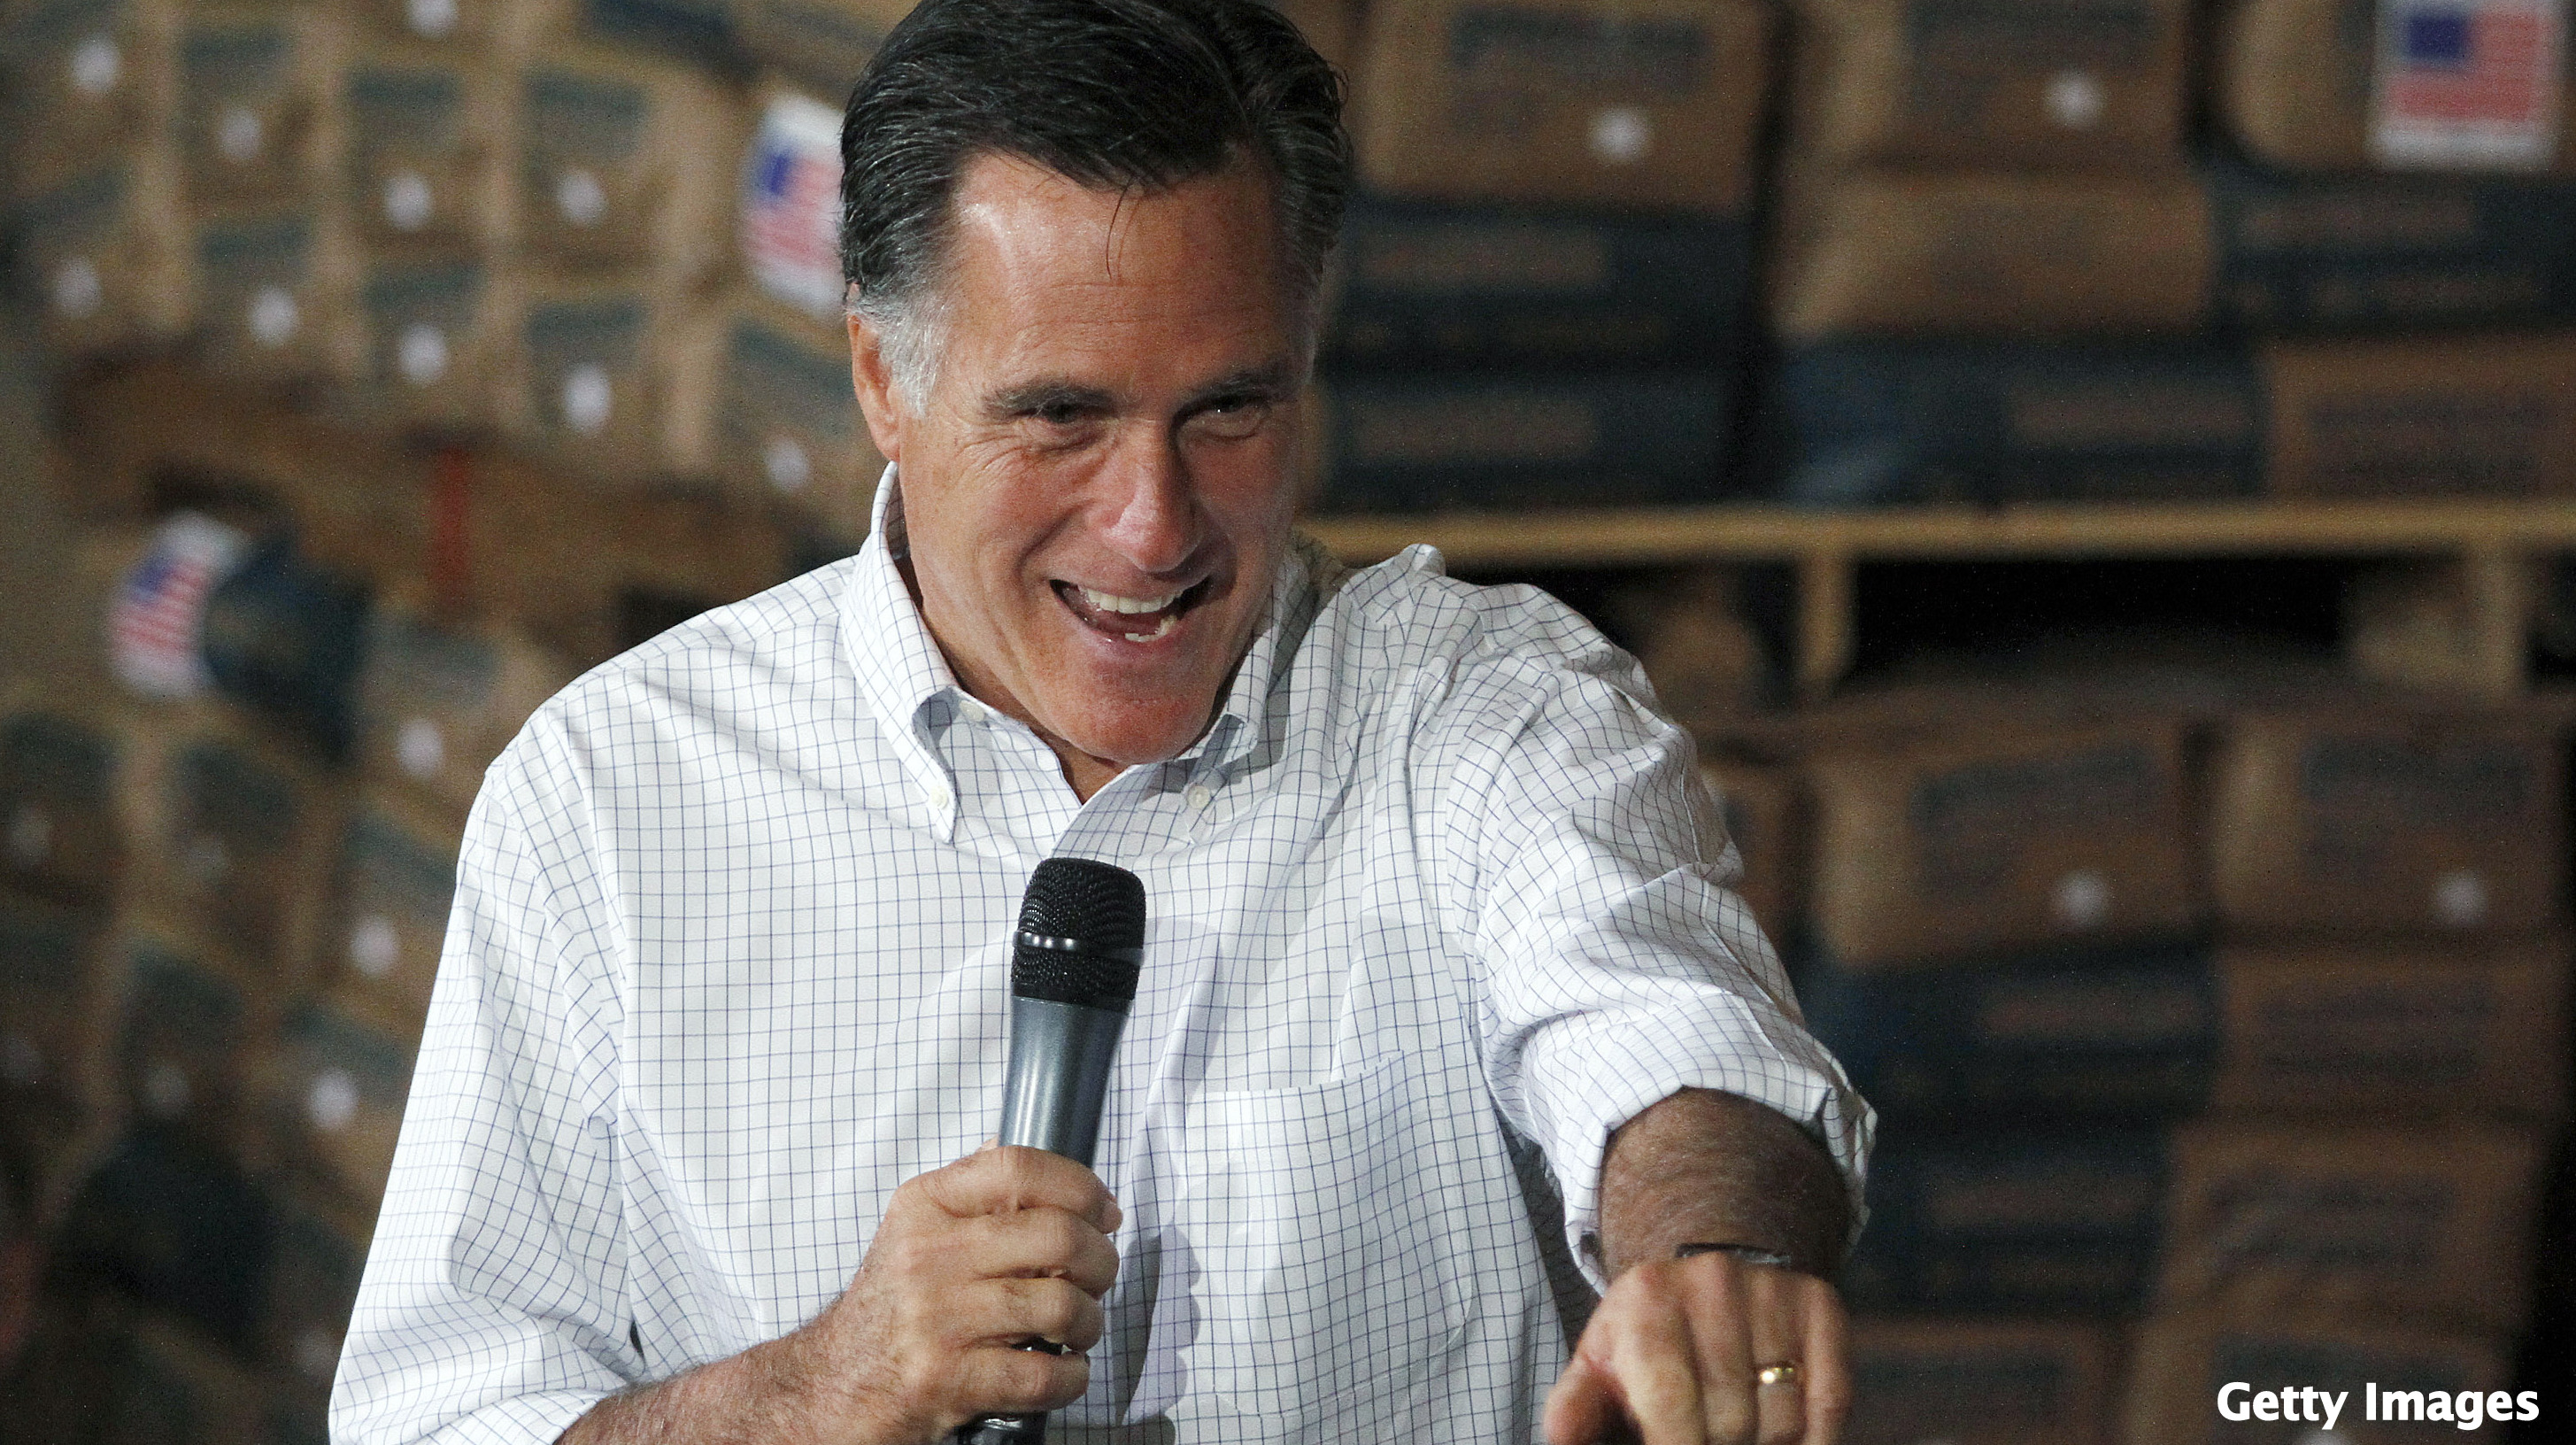 Romney wins Kentucky primary, CNN projects